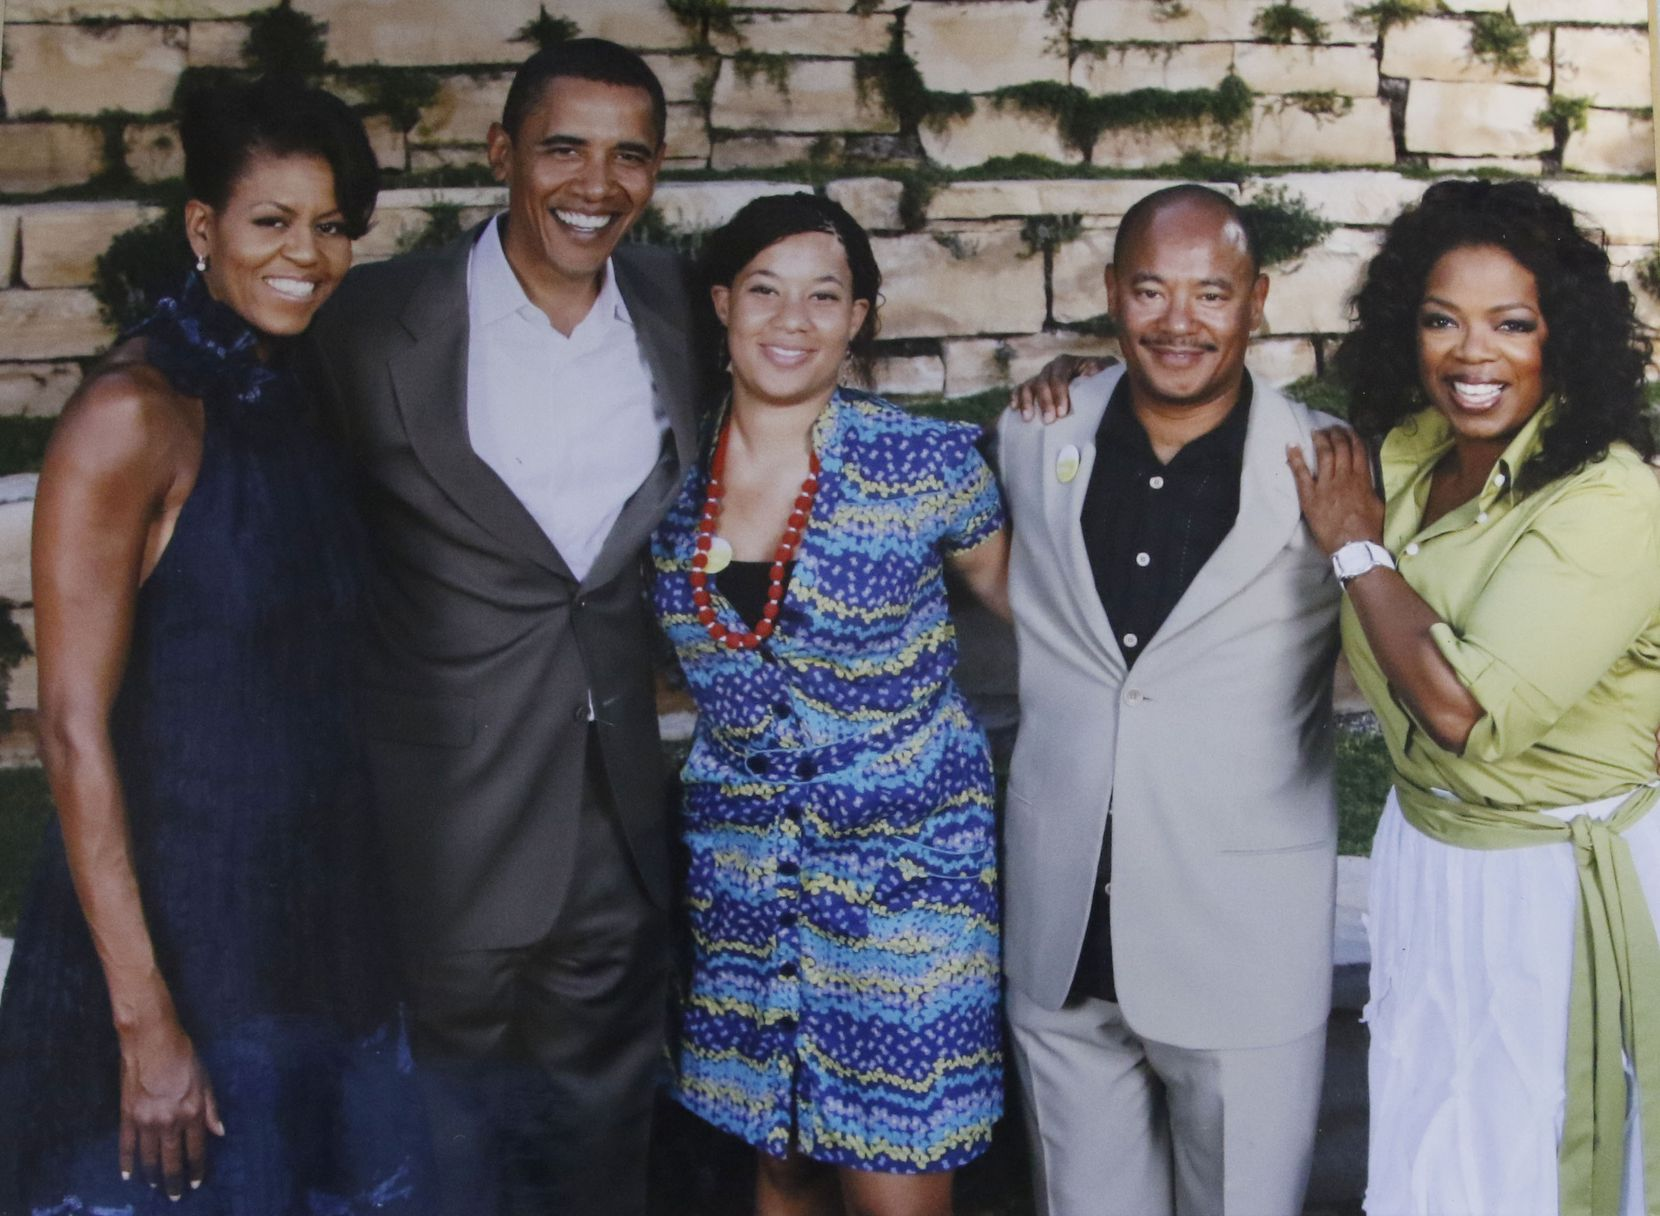 Kneeland Youngblood and his daughter Devon (center) are shown with former President Barack Obama, Michelle Obama and Oprah Winfrey. This picture was shot in Youngblood's office in Dallas in 2015.